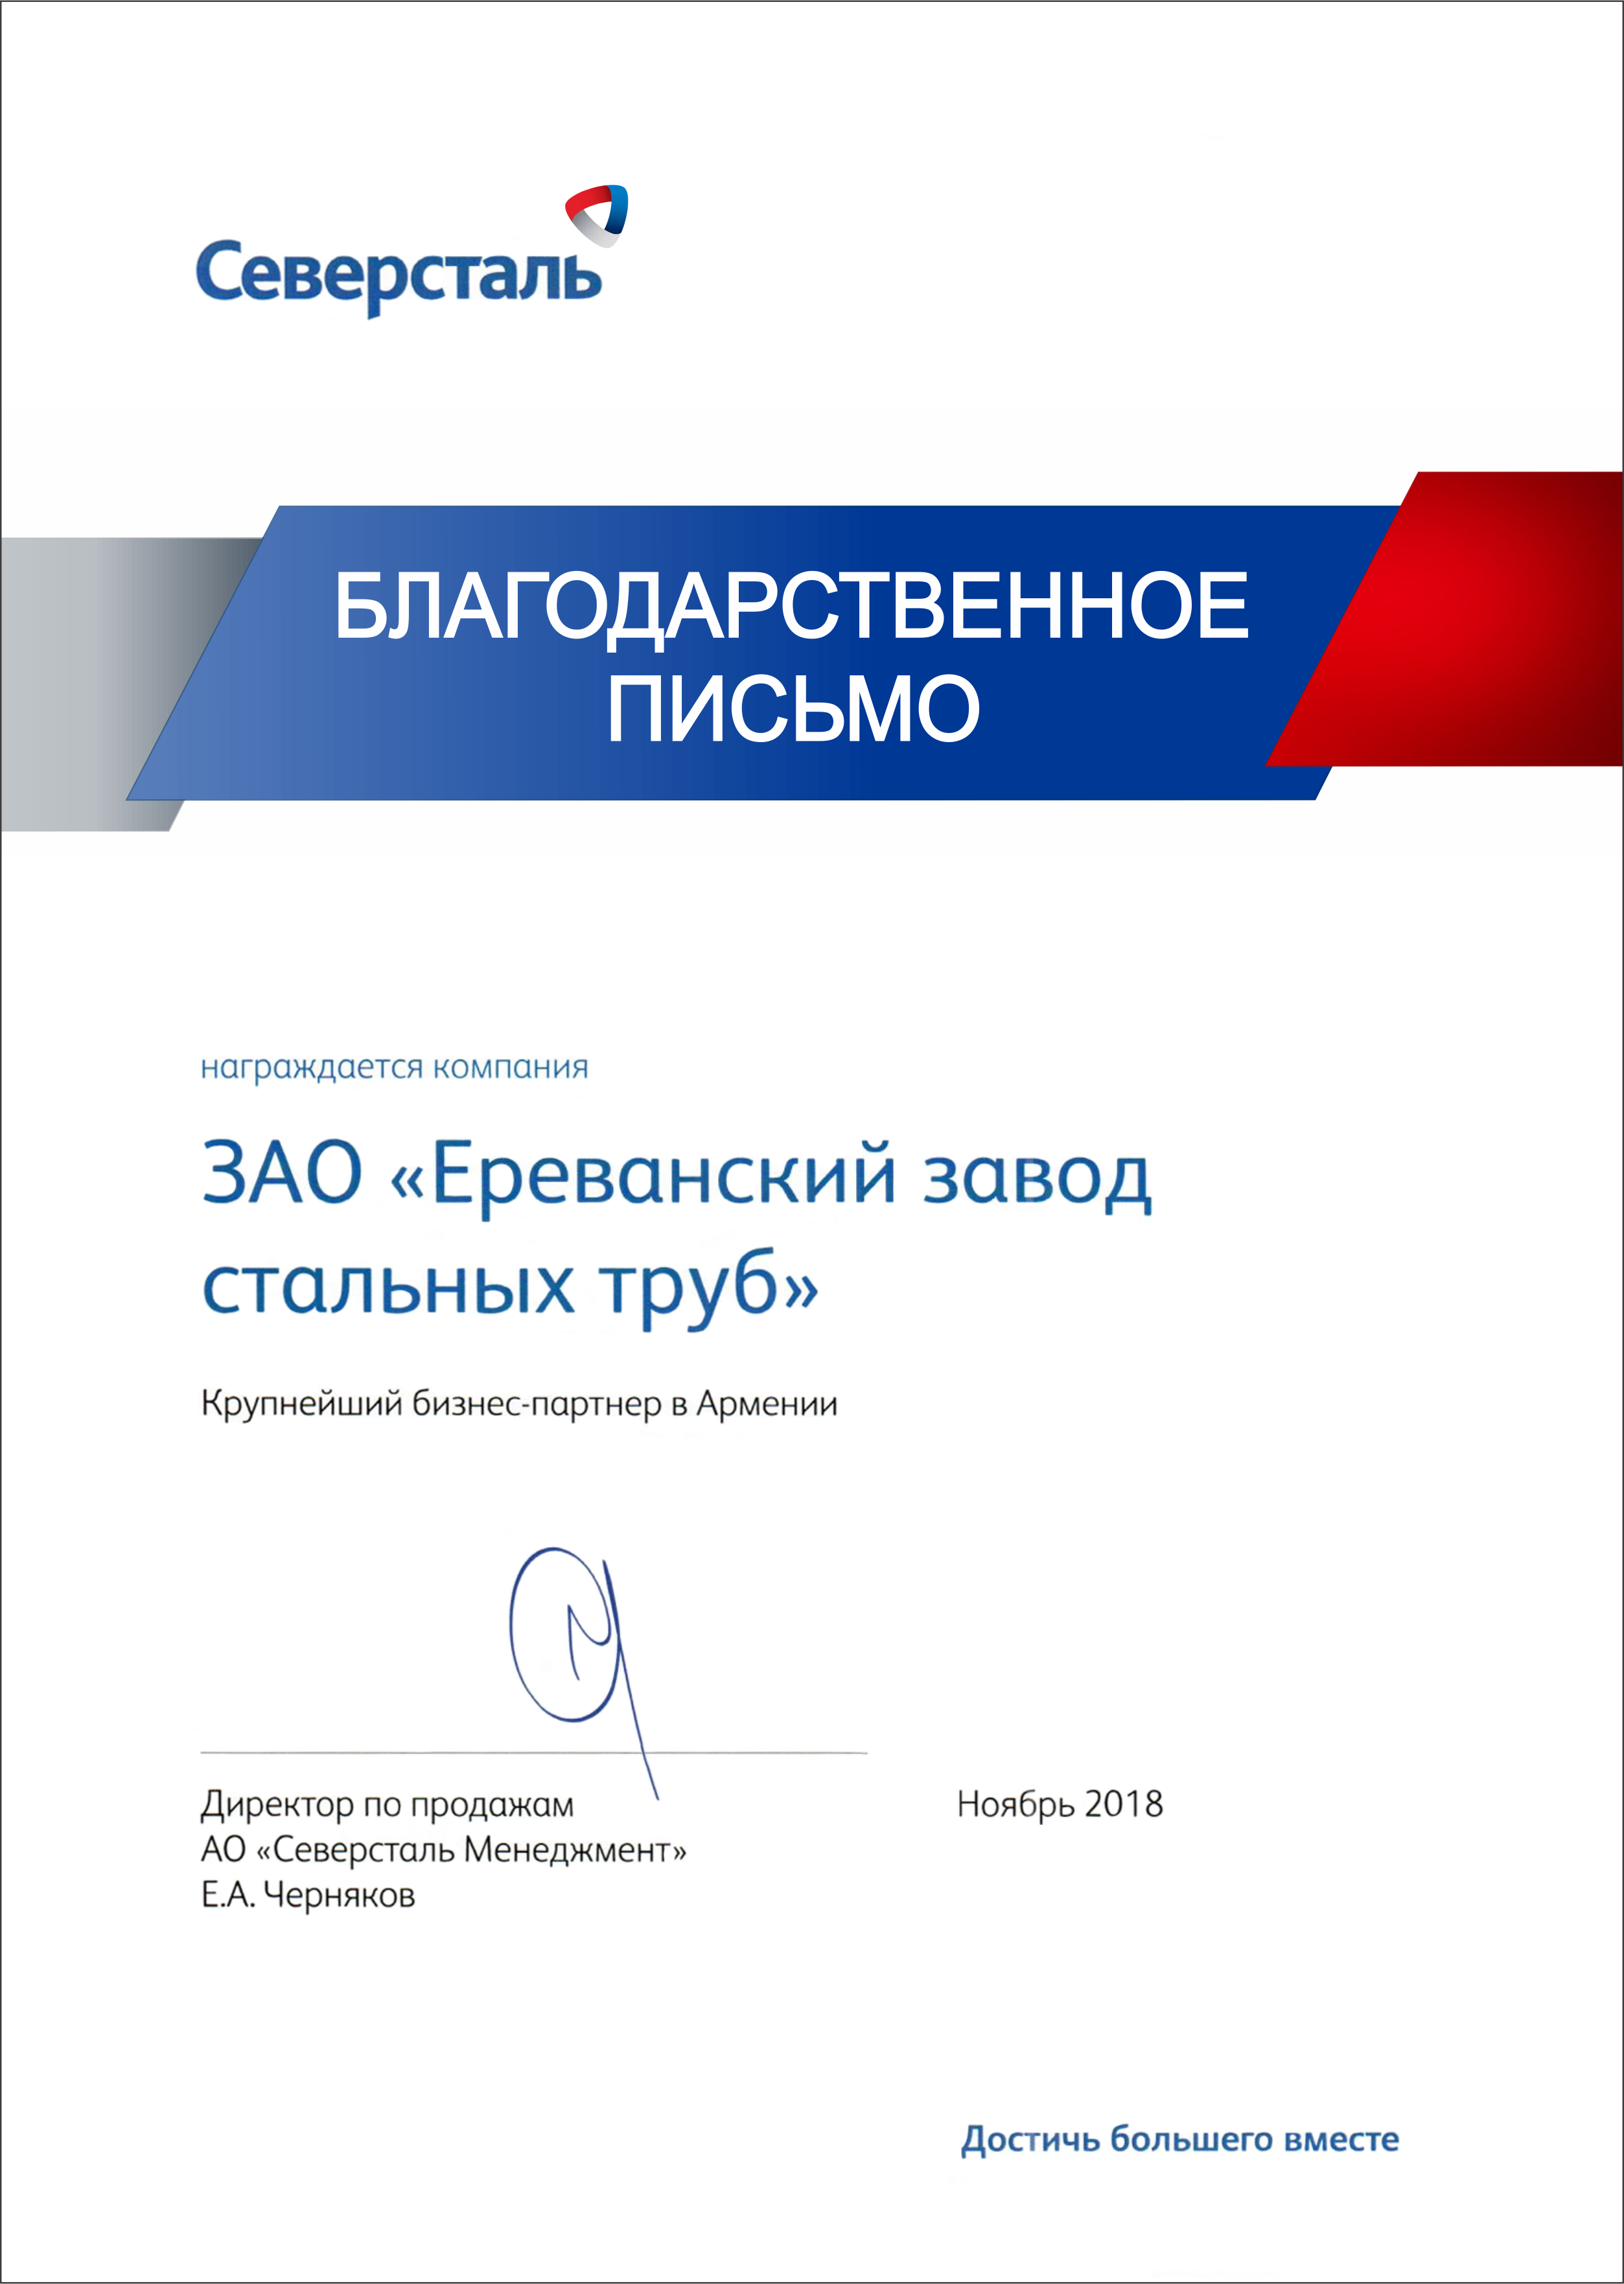 Appreciation Letter, The Largest Business Partner in Armenia, November 2018